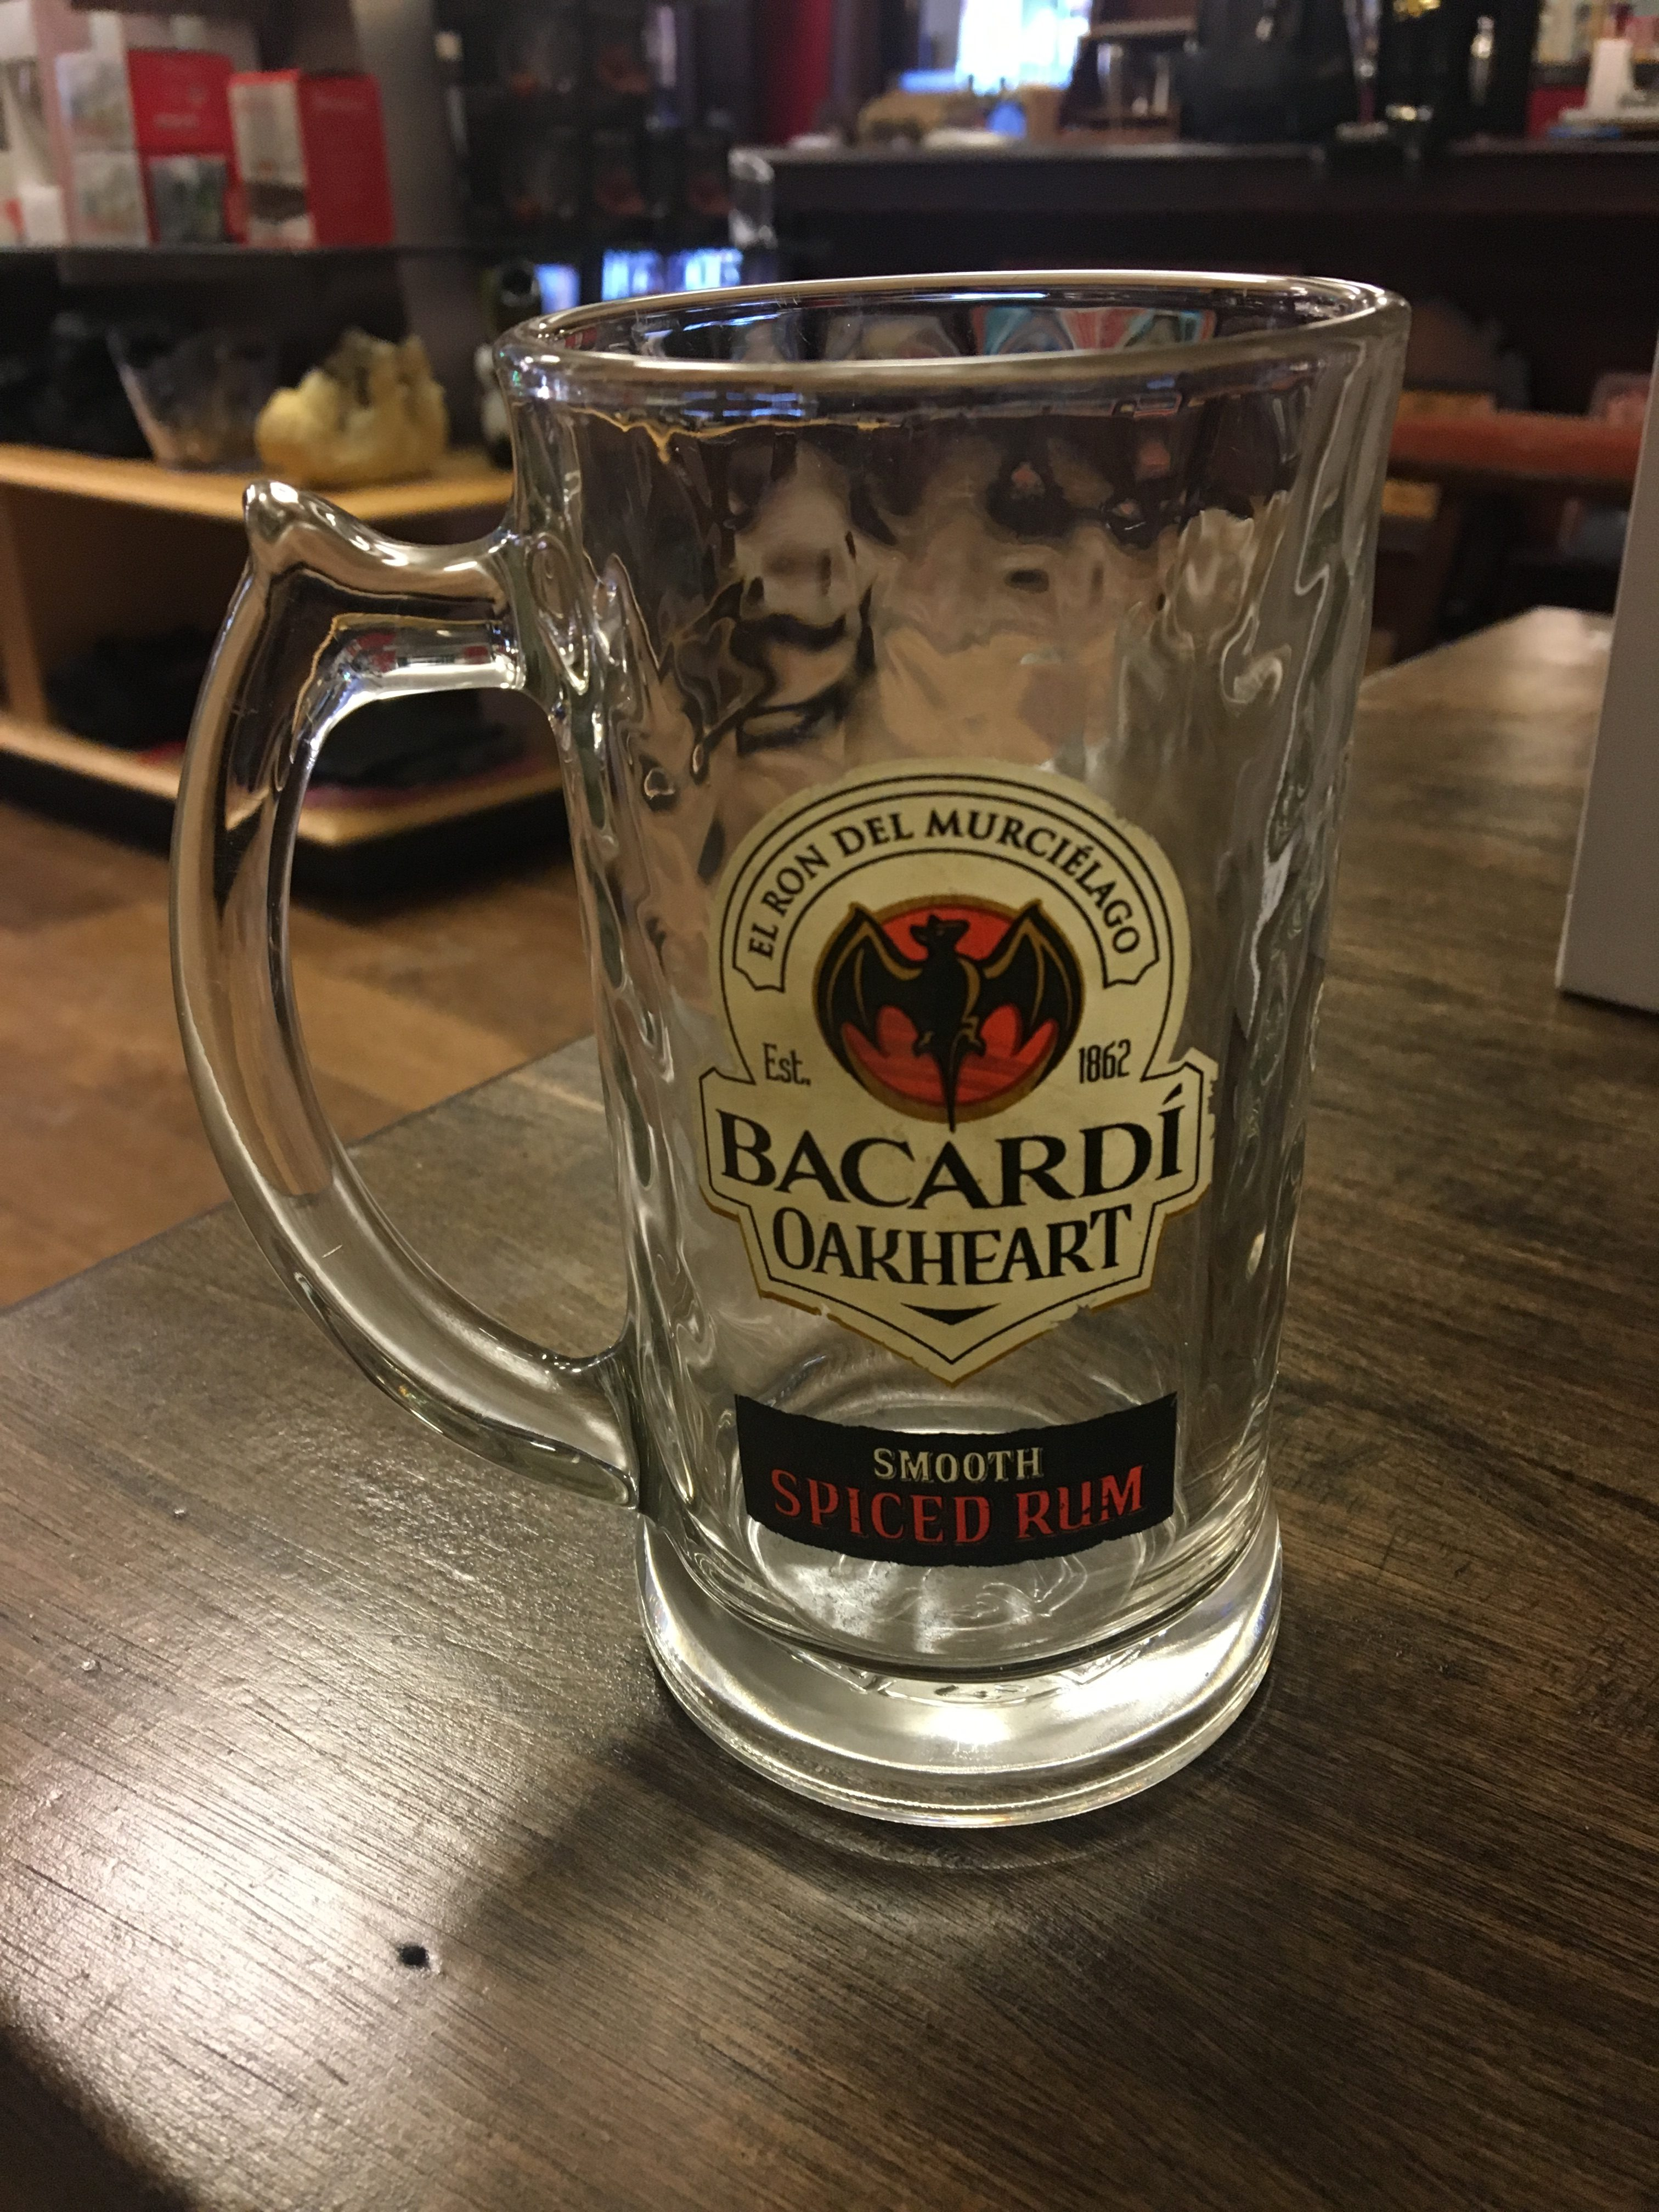 Bacardi Oakheart Smooth Spiced Rum Mugs